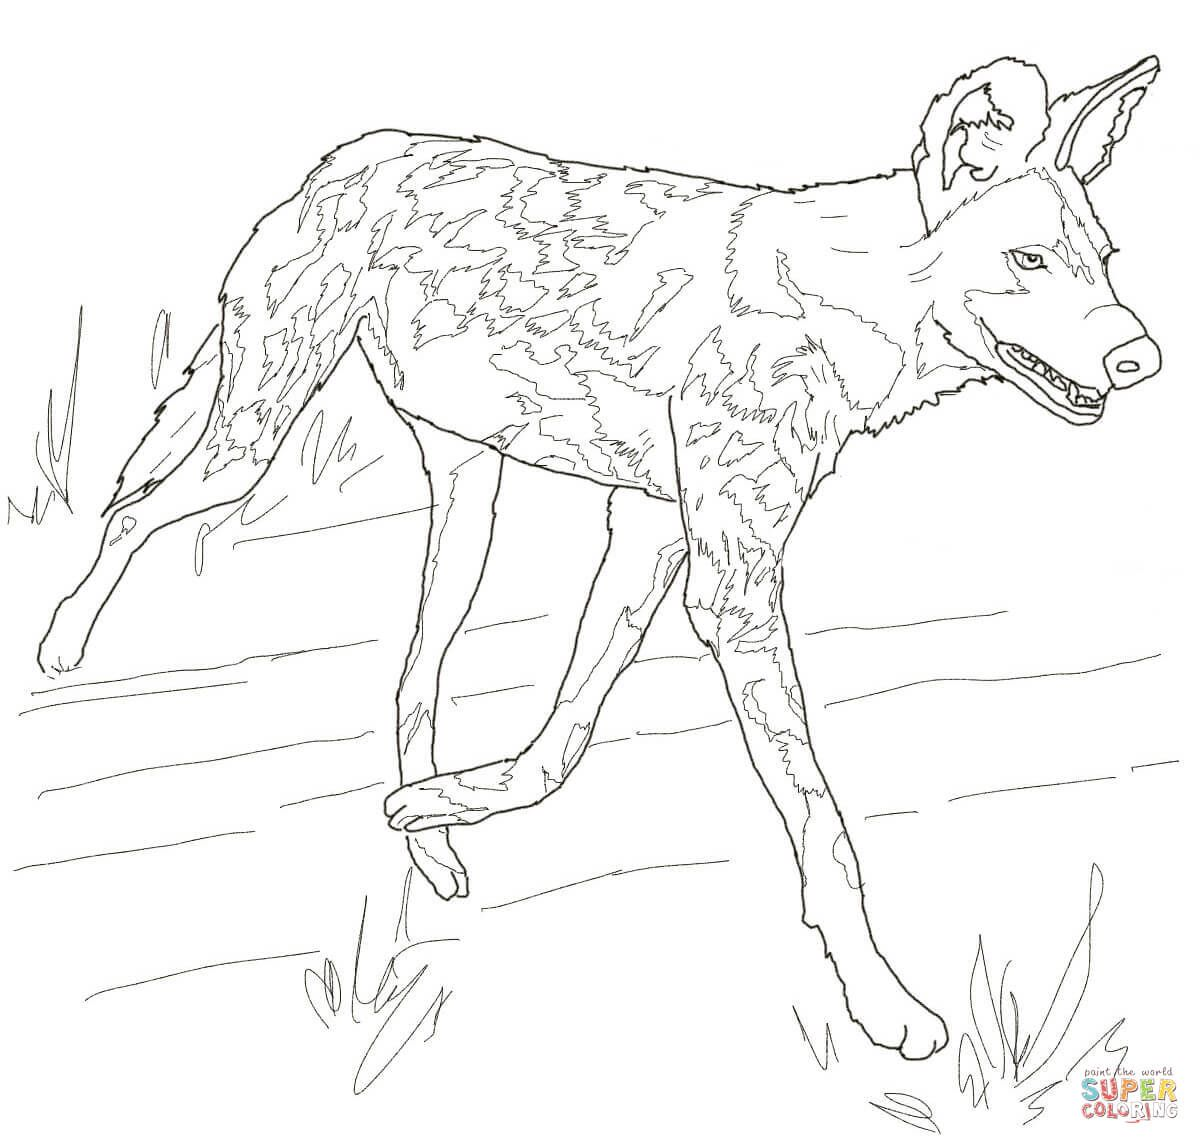 The African Painted Dog Typically Roams The Open Plains